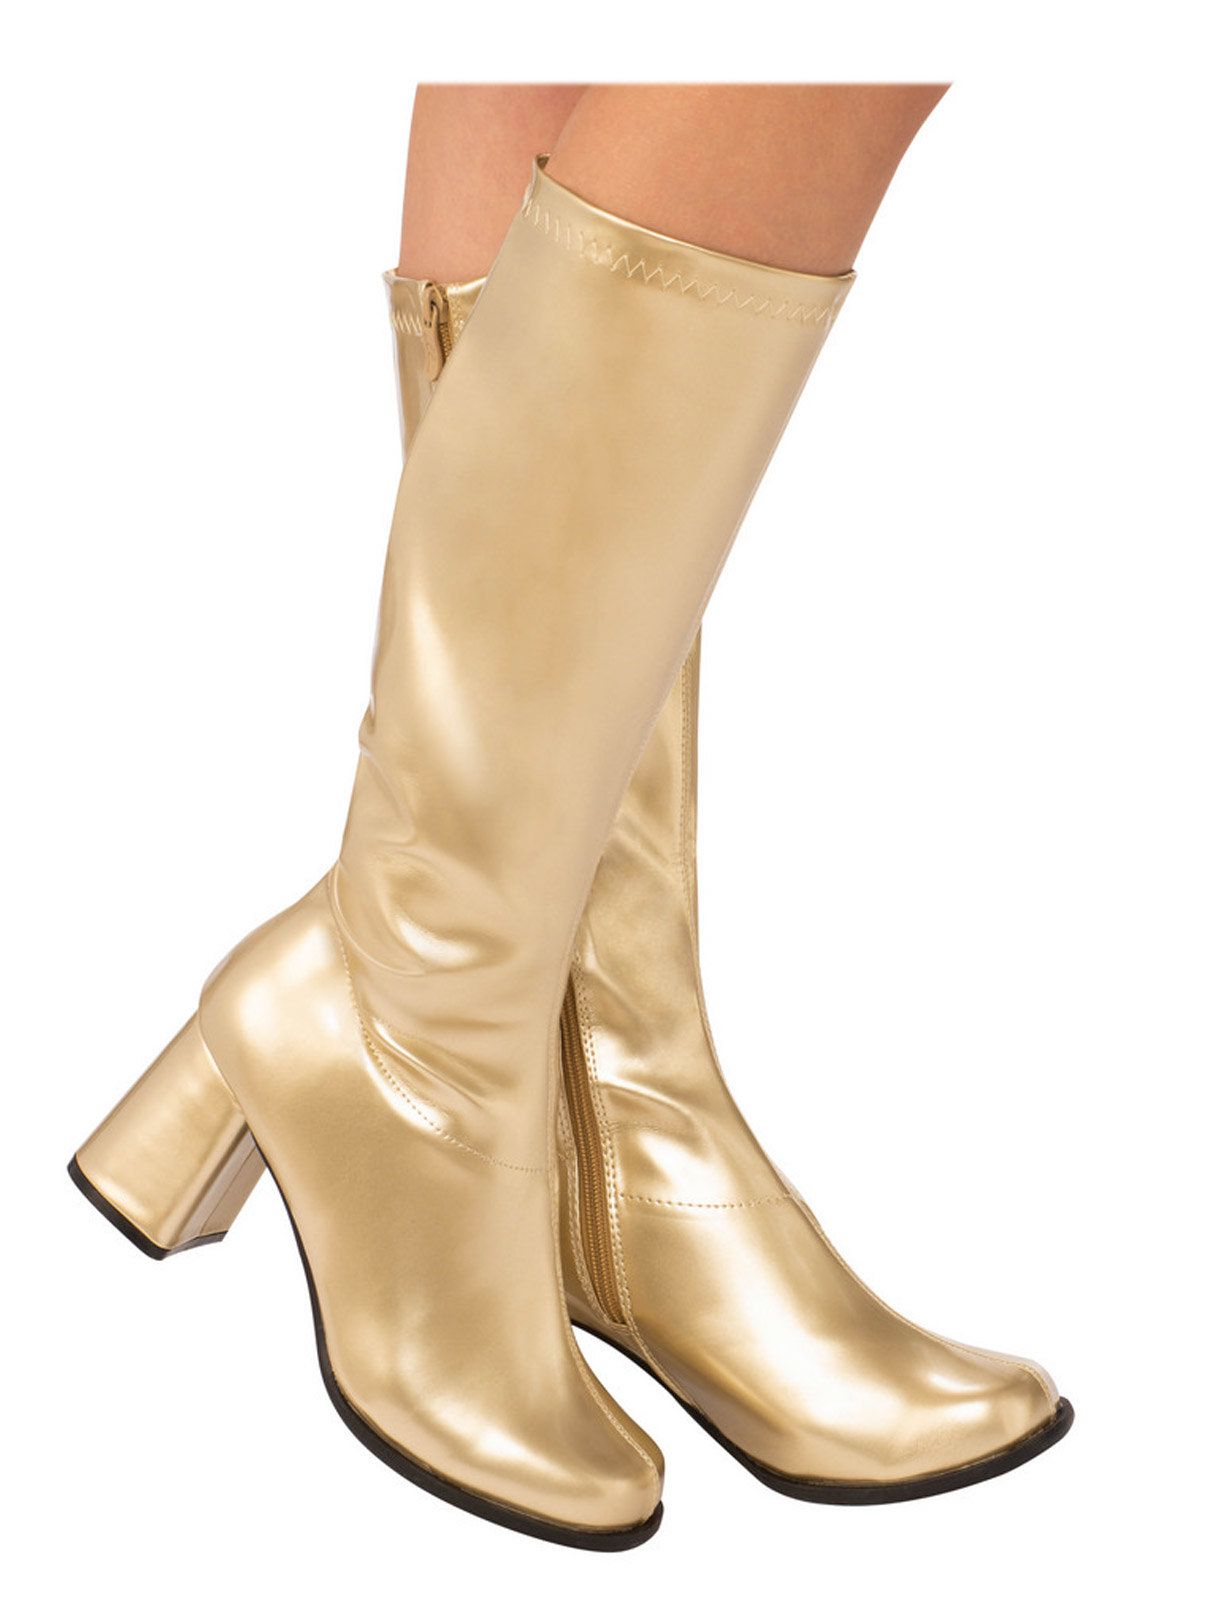 bb84f0695ae Adult Gold GoGo Boots - Costume Accessories for 2018